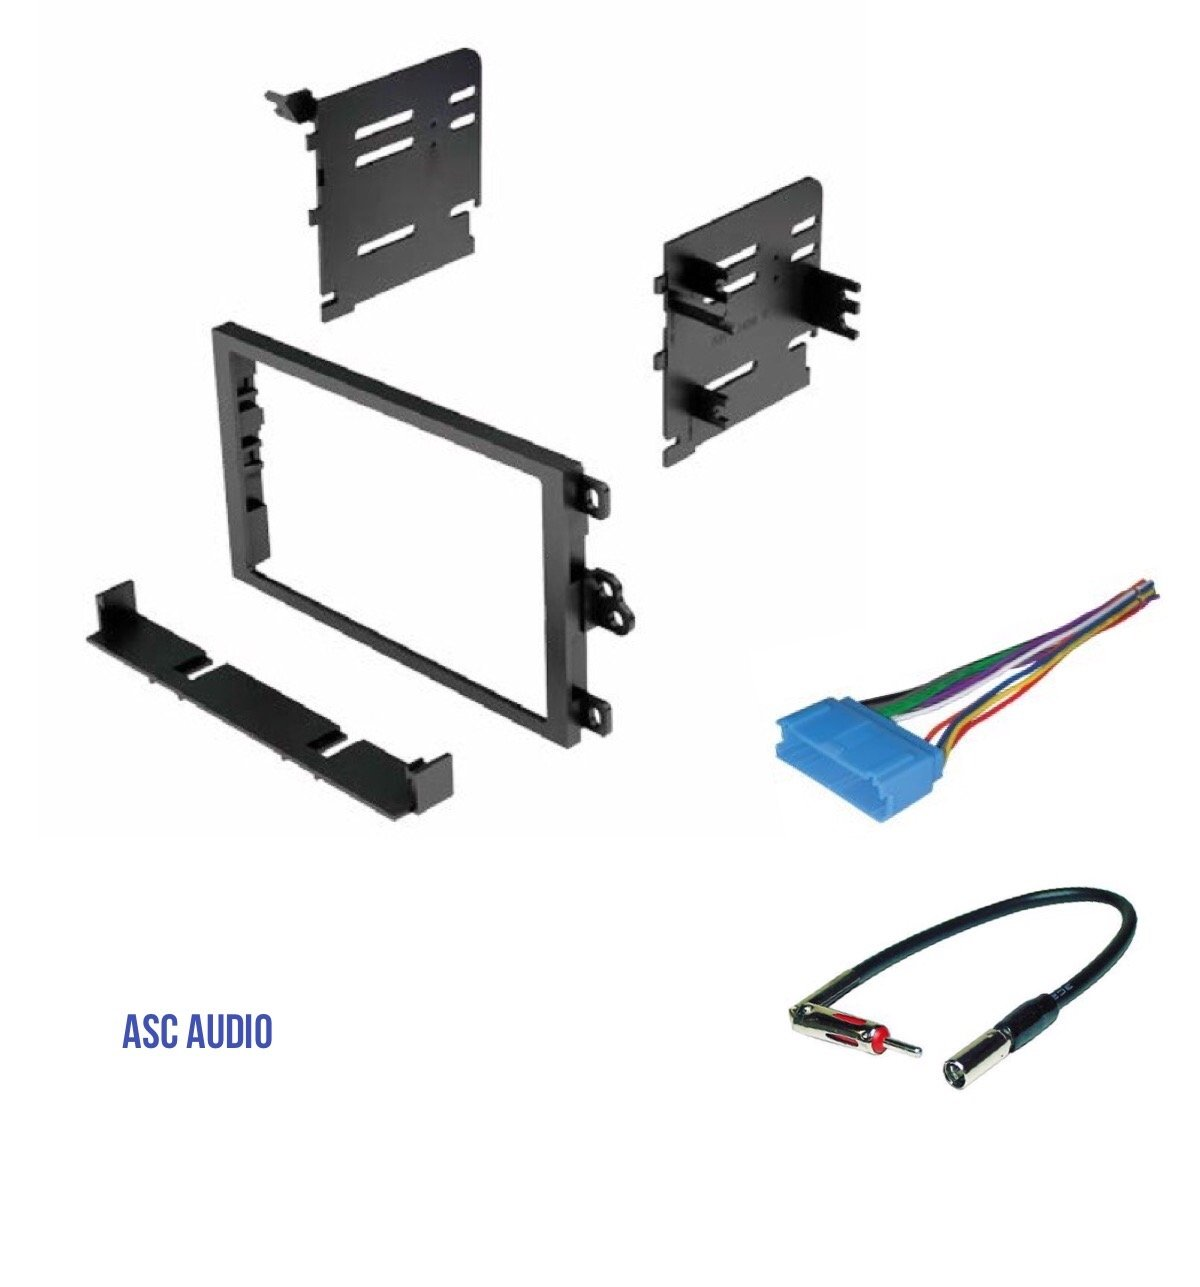 ASC Double Din Car Stereo Dash Kit, Wire Harness, Antenna Adapter for some GM Vehicles - No Factory Amp - Basic Wire Harness - Very Important: Read Compatible Vehicles and Restrictions Listed Below